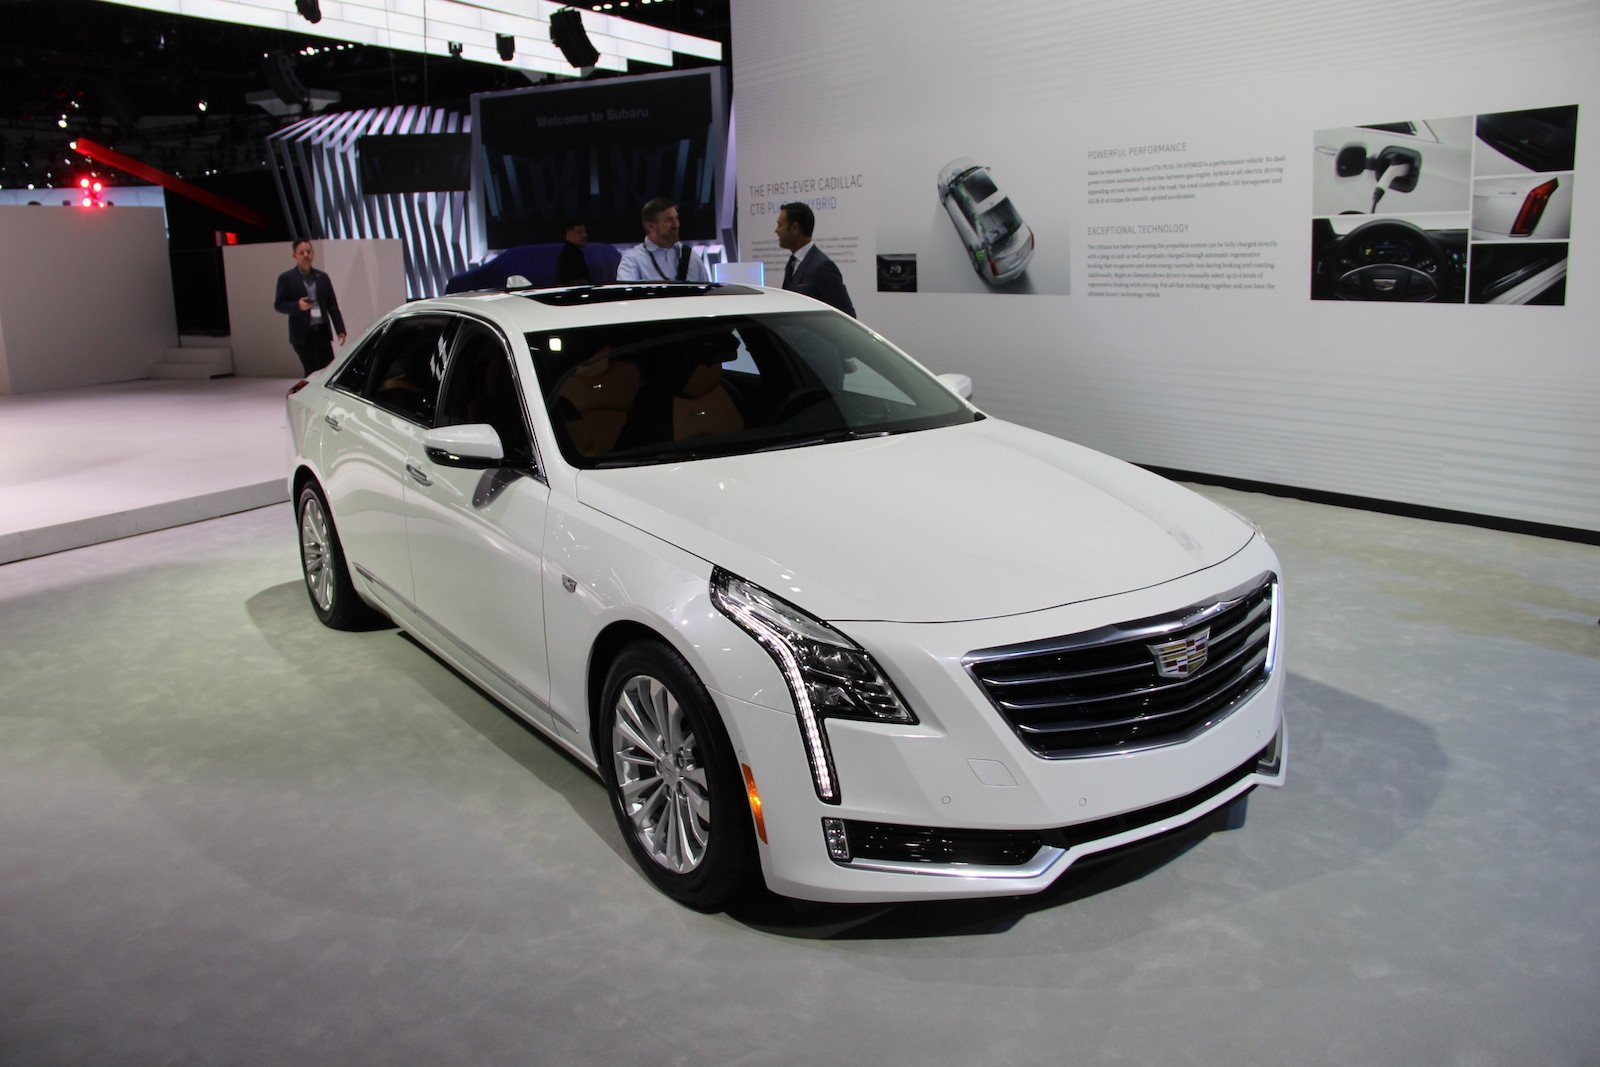 2017 cadillac ct6 plug in hybrid good for 30 miles of electric driving news. Black Bedroom Furniture Sets. Home Design Ideas